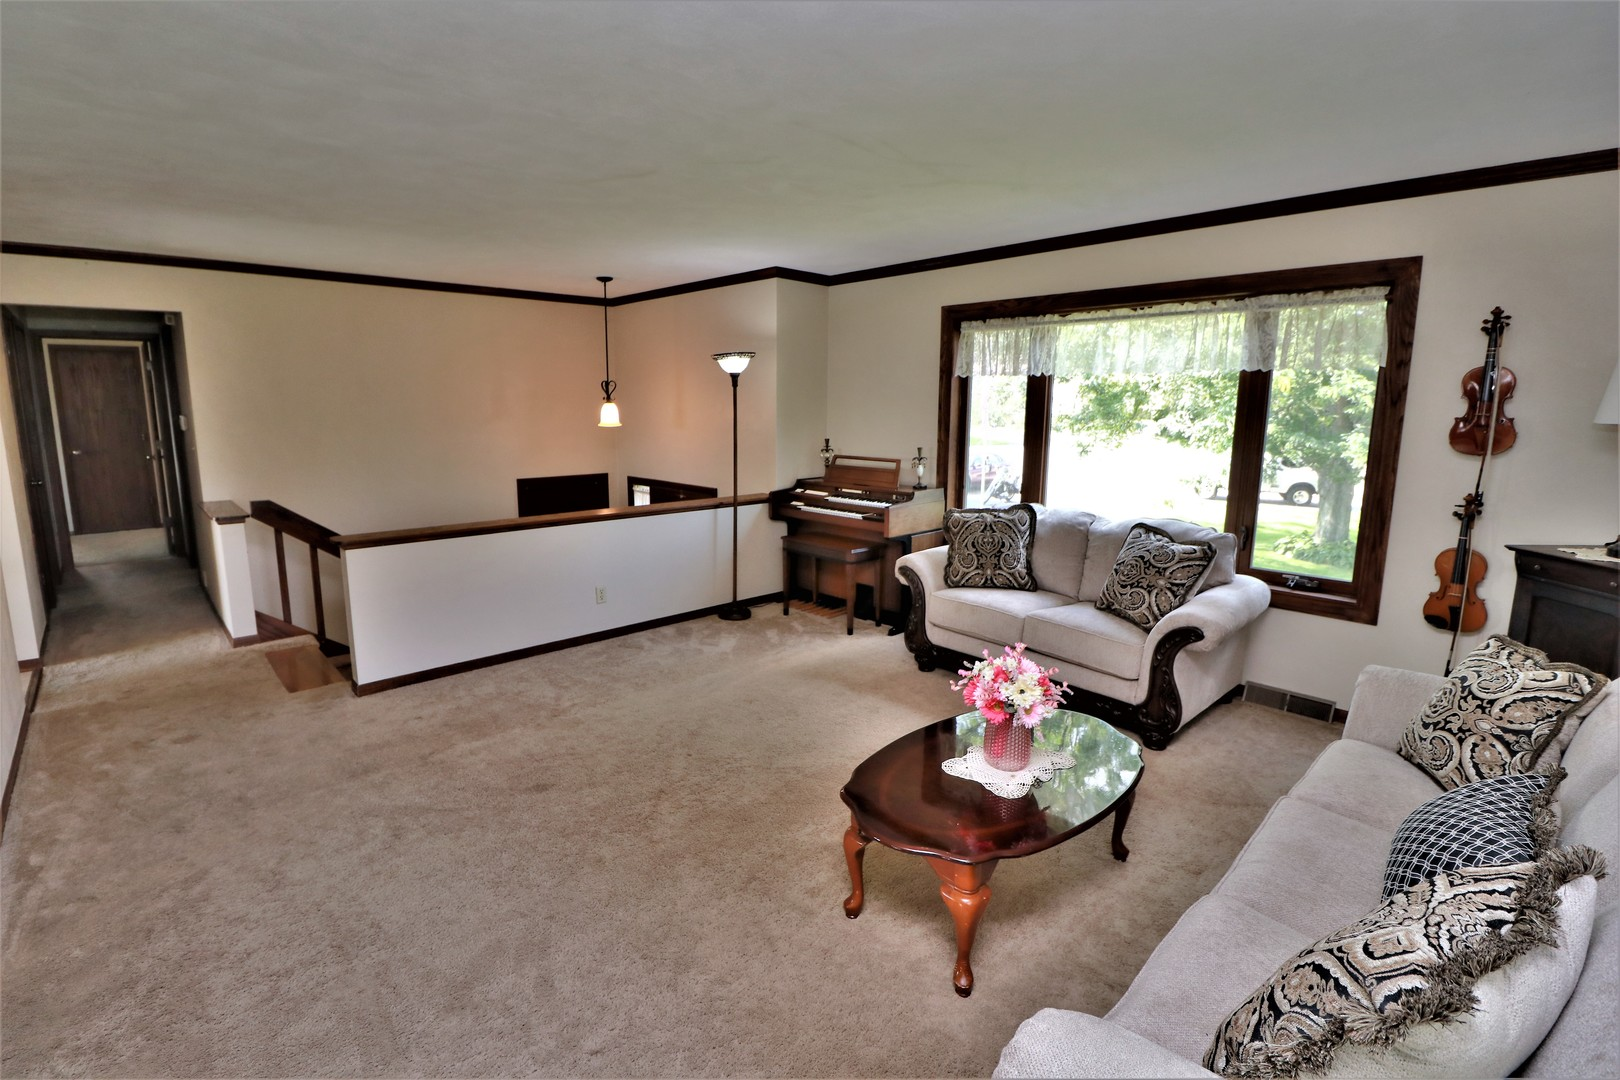 muslim singles in cherry valley Search cherry valley, il foreclosure listings at homefinder buy homes at reduced prices.